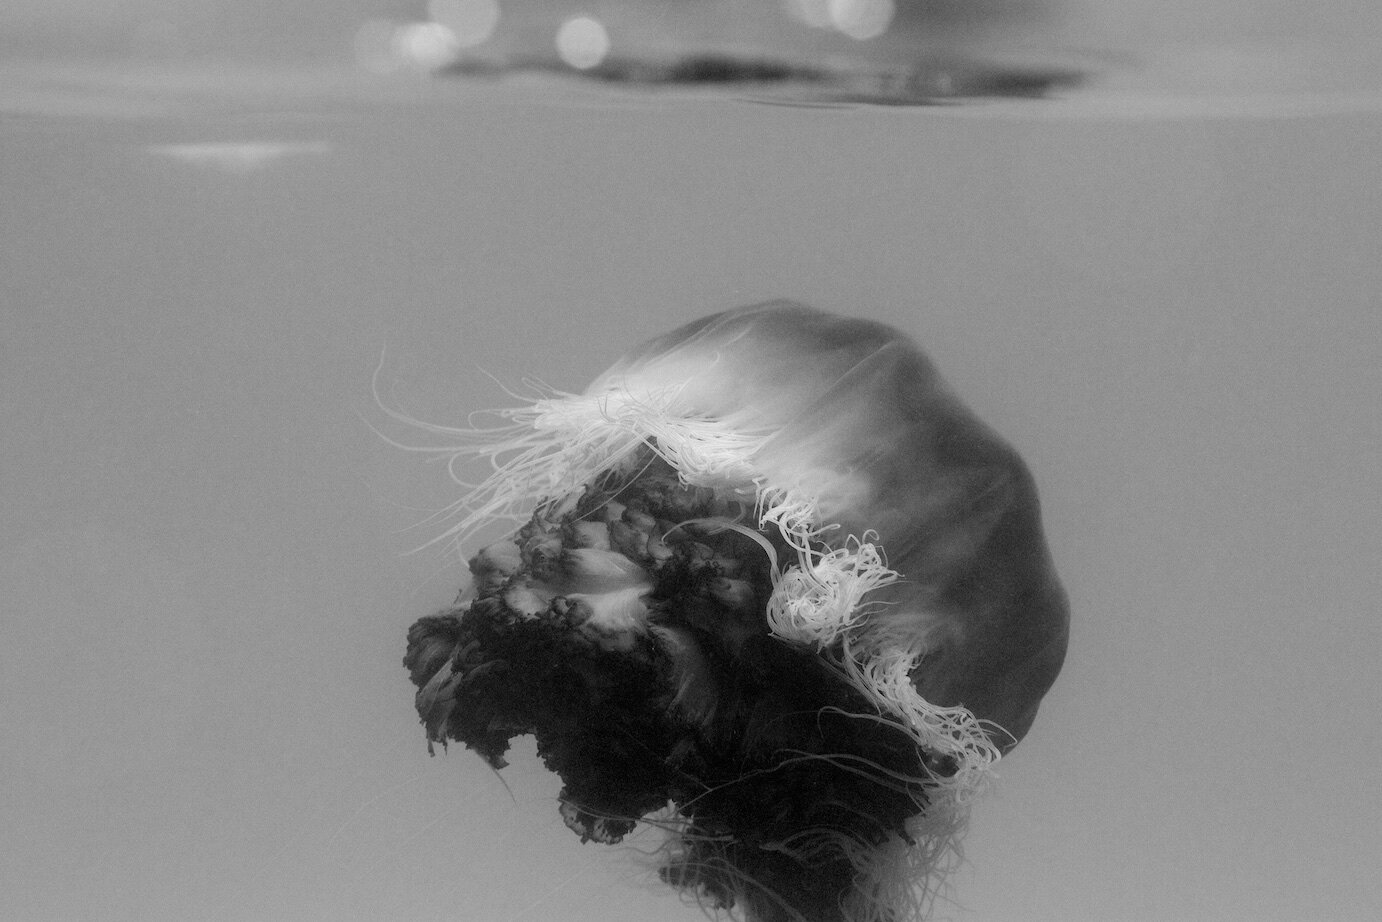 01 Jellyfish. Photographer Digby Ayton.jpg